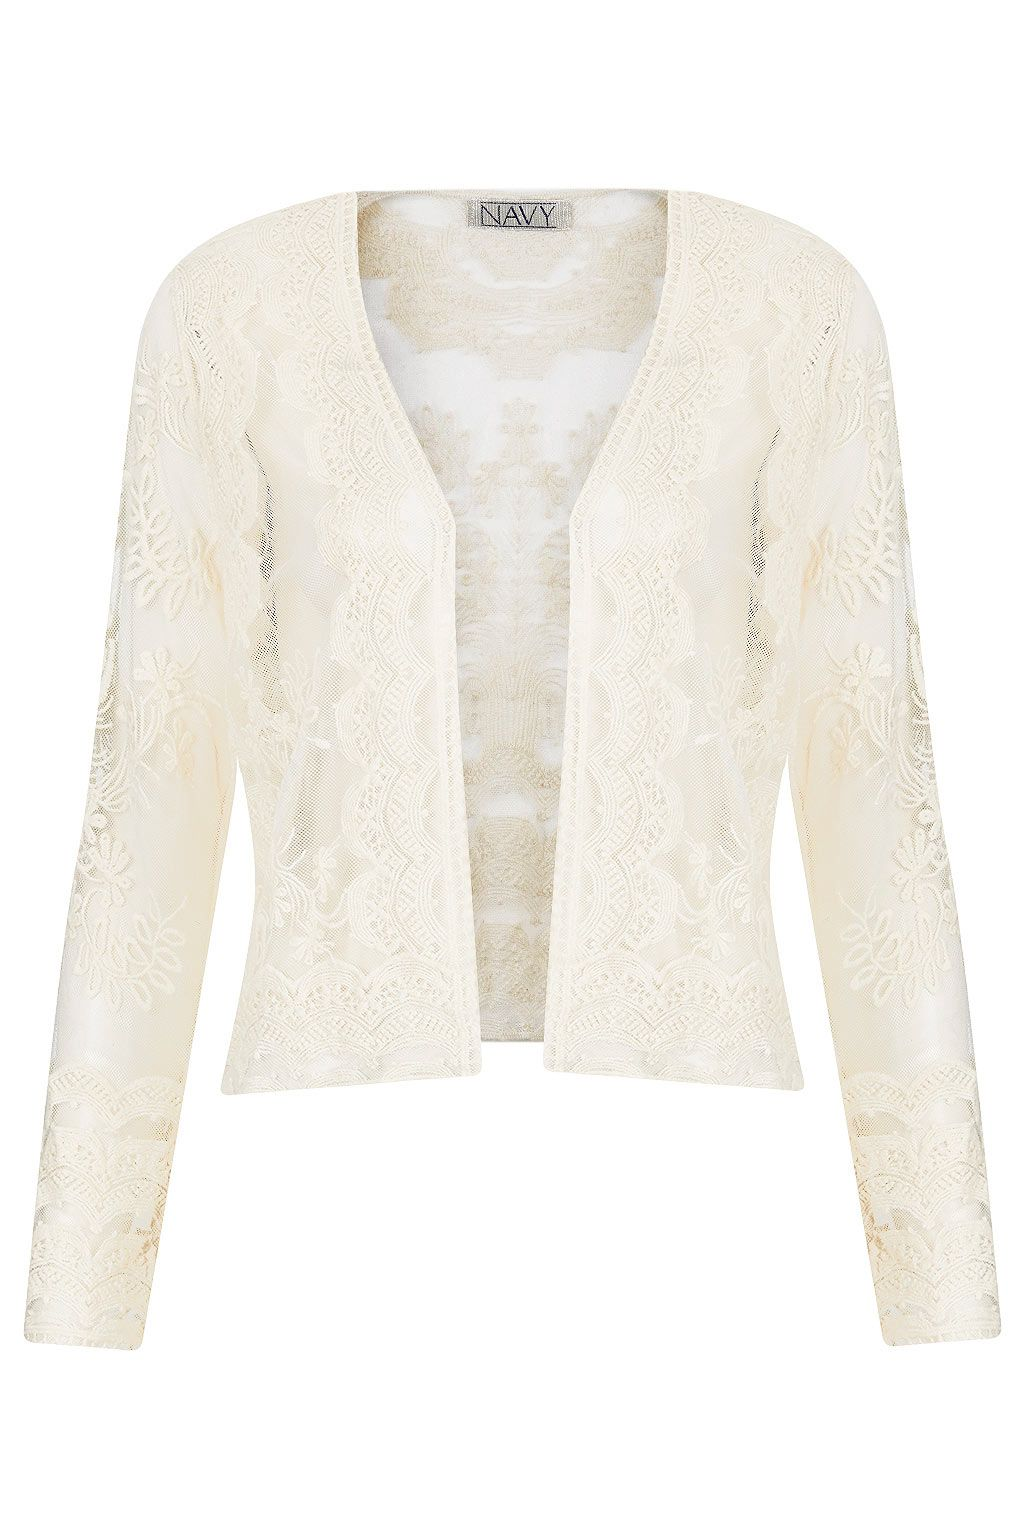 Skye Lace Cardigan by Navy - Topshop | Blazers | Pinterest ...